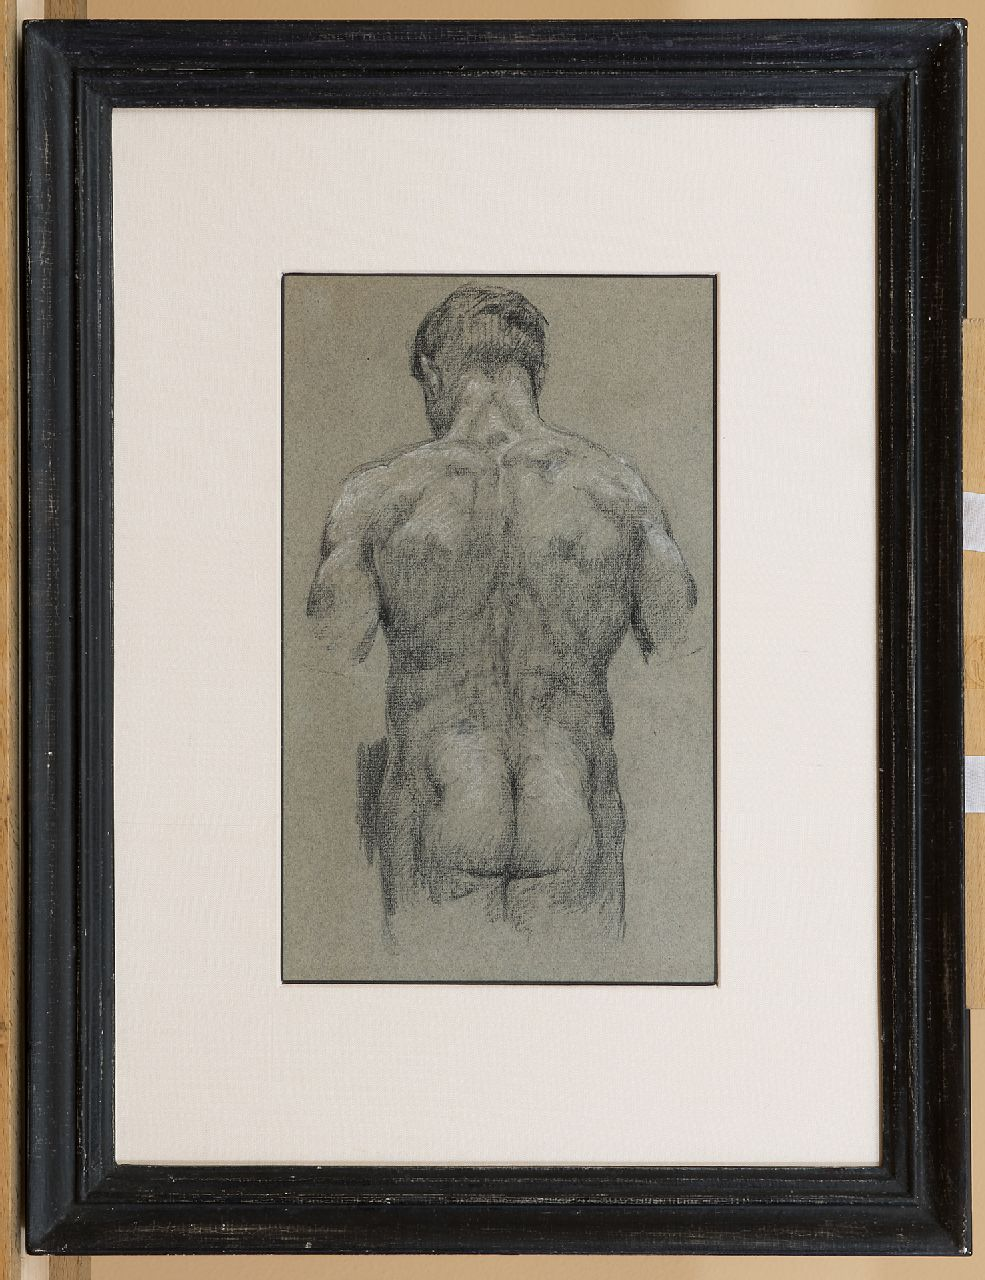 Roelofs O.W.A.  | Otto Willem Albertus 'Albert' Roelofs | Watercolours and drawings offered for sale | Study of a male nude, black and white chalk on paper 34.2 x 17.2 cm